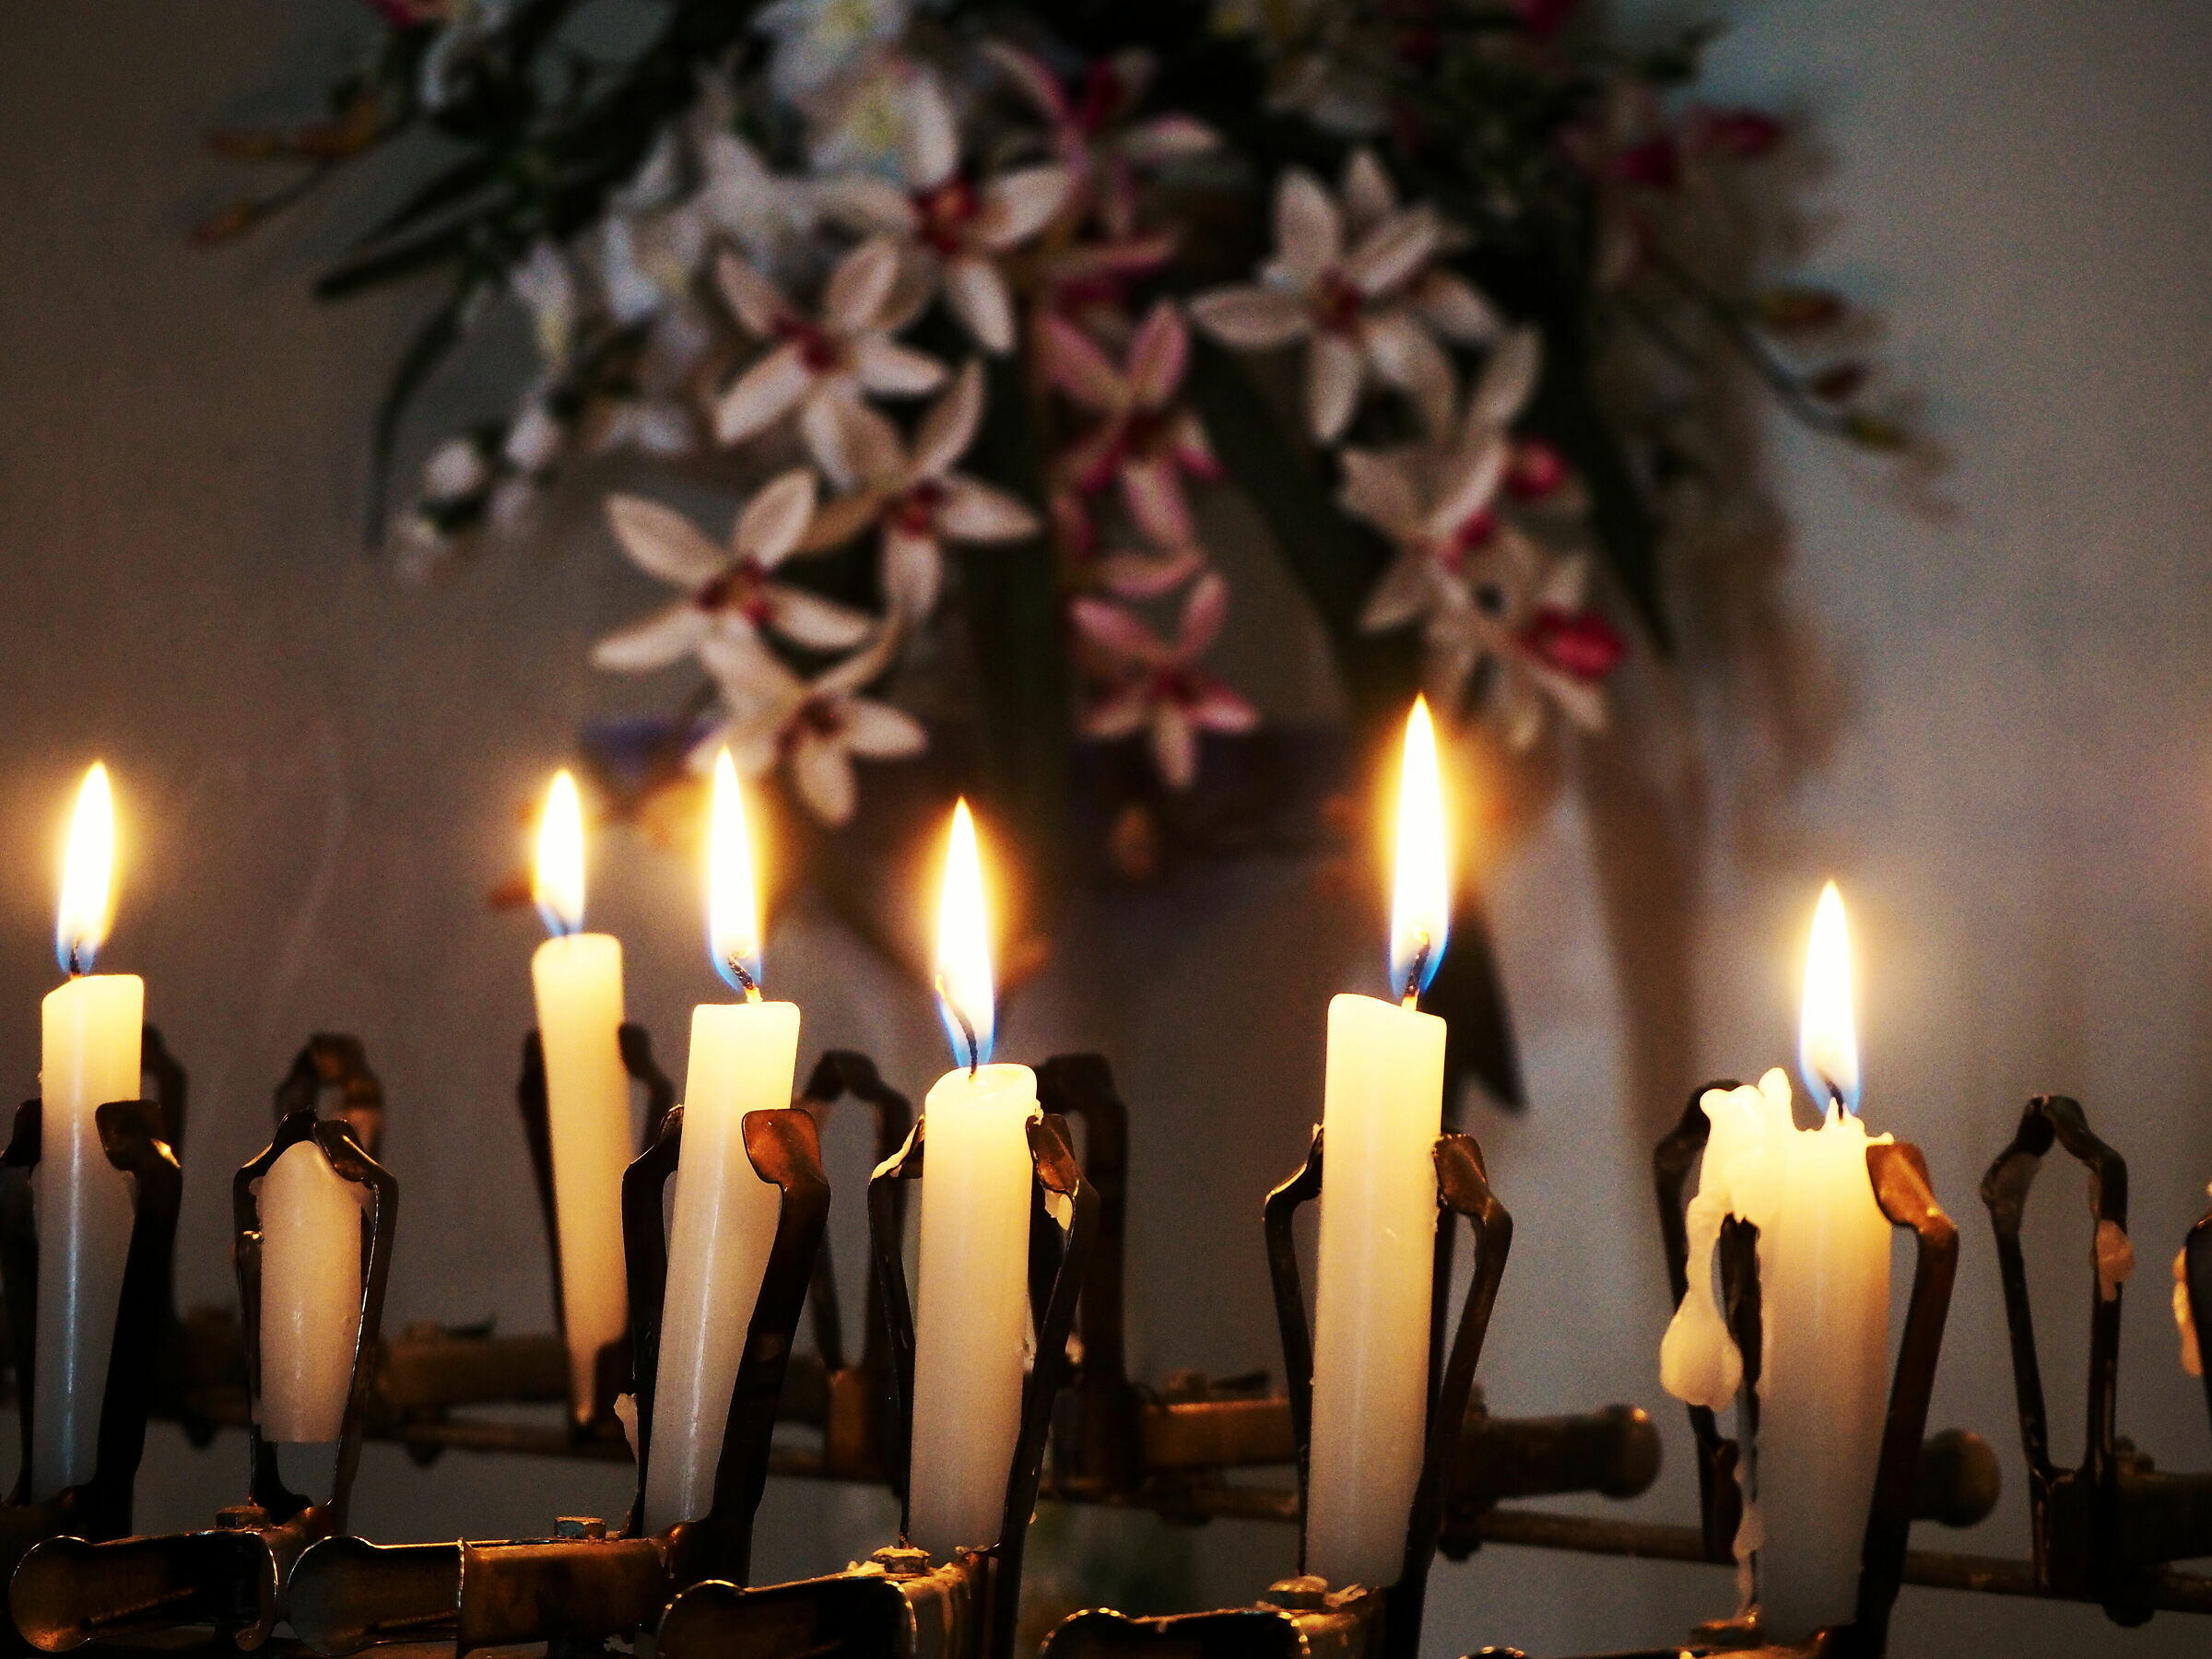 Candele in chiesa...